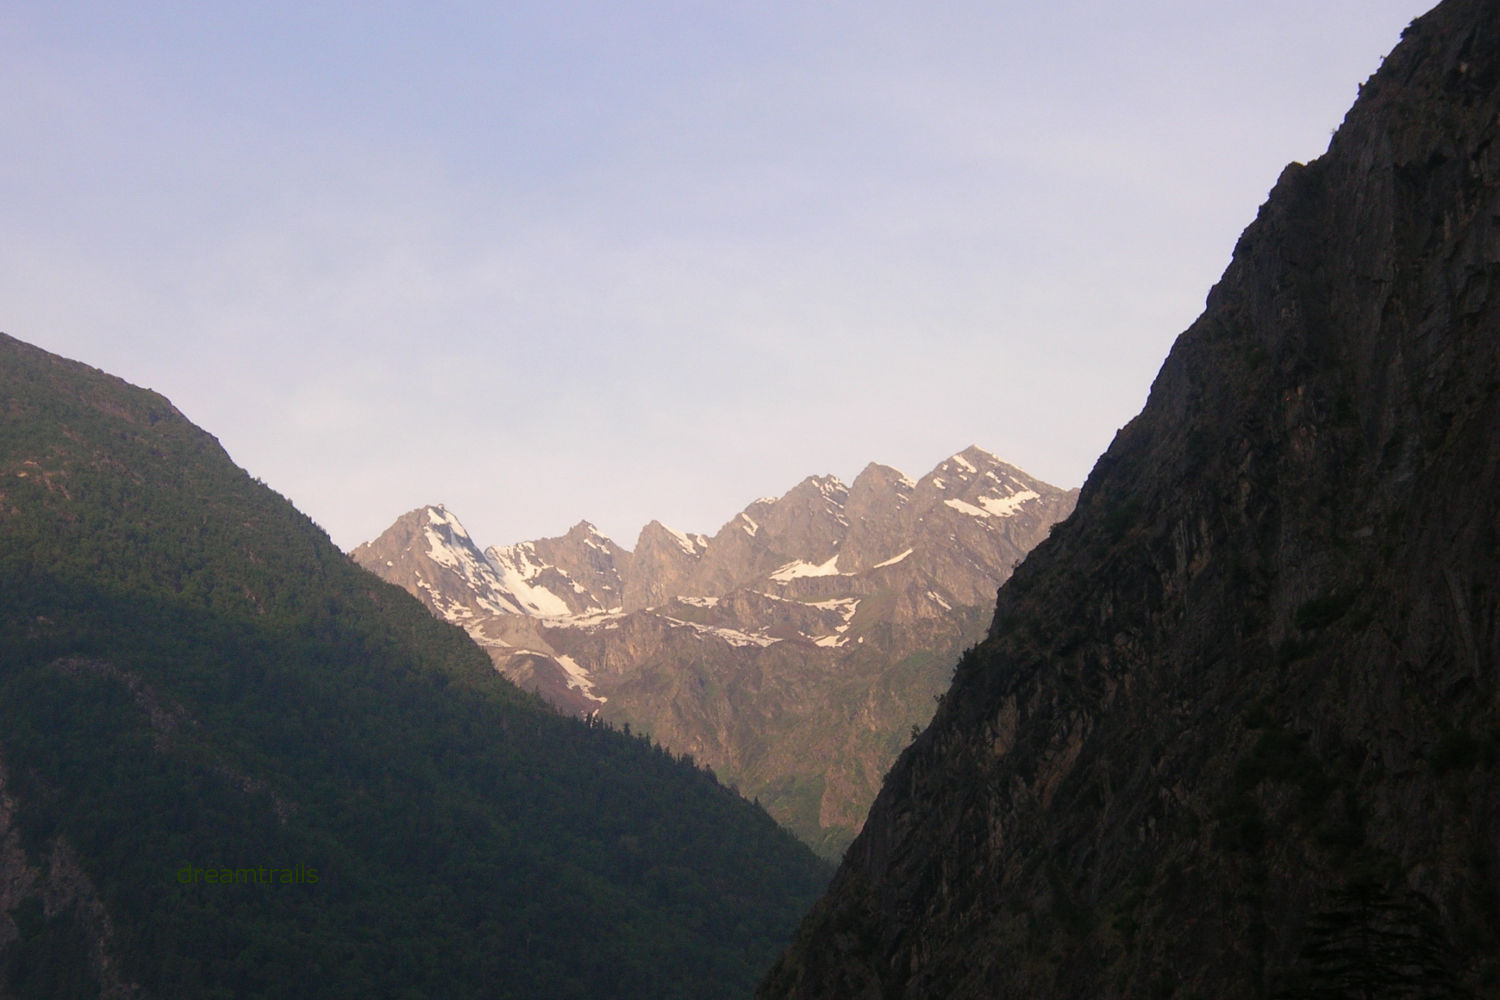 On the way to Badrinath